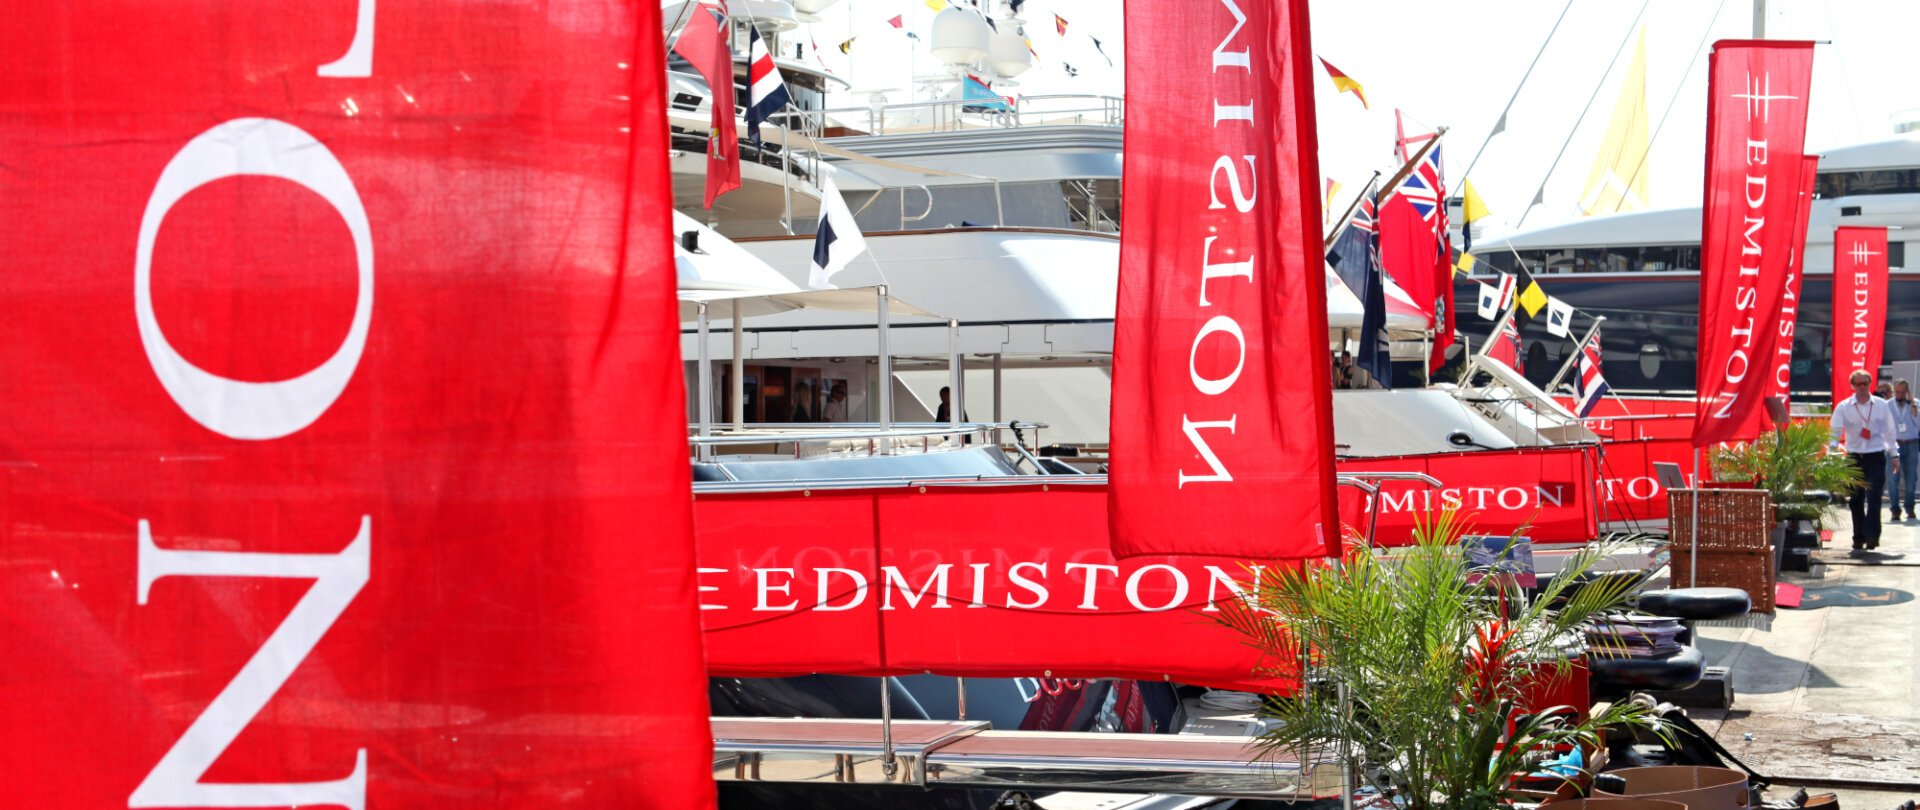 Fort Lauderdale International Boat Show 2015 photo 2